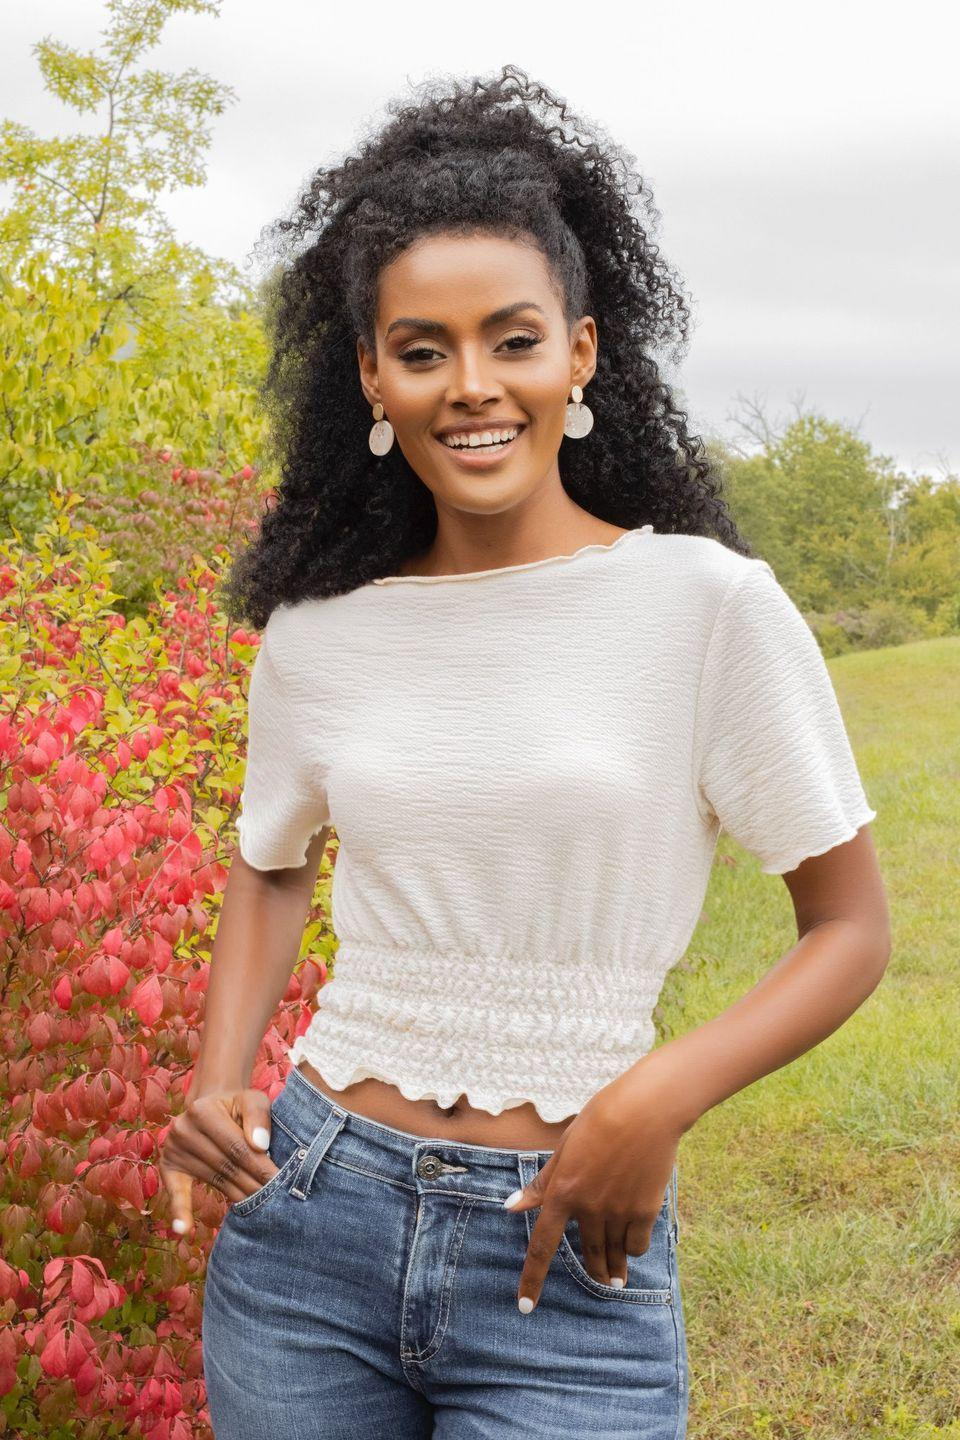 """<p>Magi is the oldest contestant competing for Matt's love at the age of 32. She's a pharmacist who lives in Washington, D.C., but she grew up in the small village of Adwa in Ethiopia. </p><p>As a result, Magi founded and works with <a href=""""https://msyshoes.org/about-us/"""" rel=""""nofollow noopener"""" target=""""_blank"""" data-ylk=""""slk:msyshoes.org"""" class=""""link rapid-noclick-resp"""">msyshoes.org</a>, which provides shoes to girls in developing nations so they can safely walk to school.</p><p>Her M.O.: """"Treat others the way your want to be treated.""""</p><p><strong>Age: 32</strong></p><p><strong>Hometown: Adwa, Ethiopia</strong></p><p><strong>I</strong><strong>n</strong><strong>stagram: <a href=""""https://www.instagram.com/magitareke/"""" rel=""""nofollow noopener"""" target=""""_blank"""" data-ylk=""""slk:@magitareke"""" class=""""link rapid-noclick-resp"""">@magitareke</a></strong></p>"""